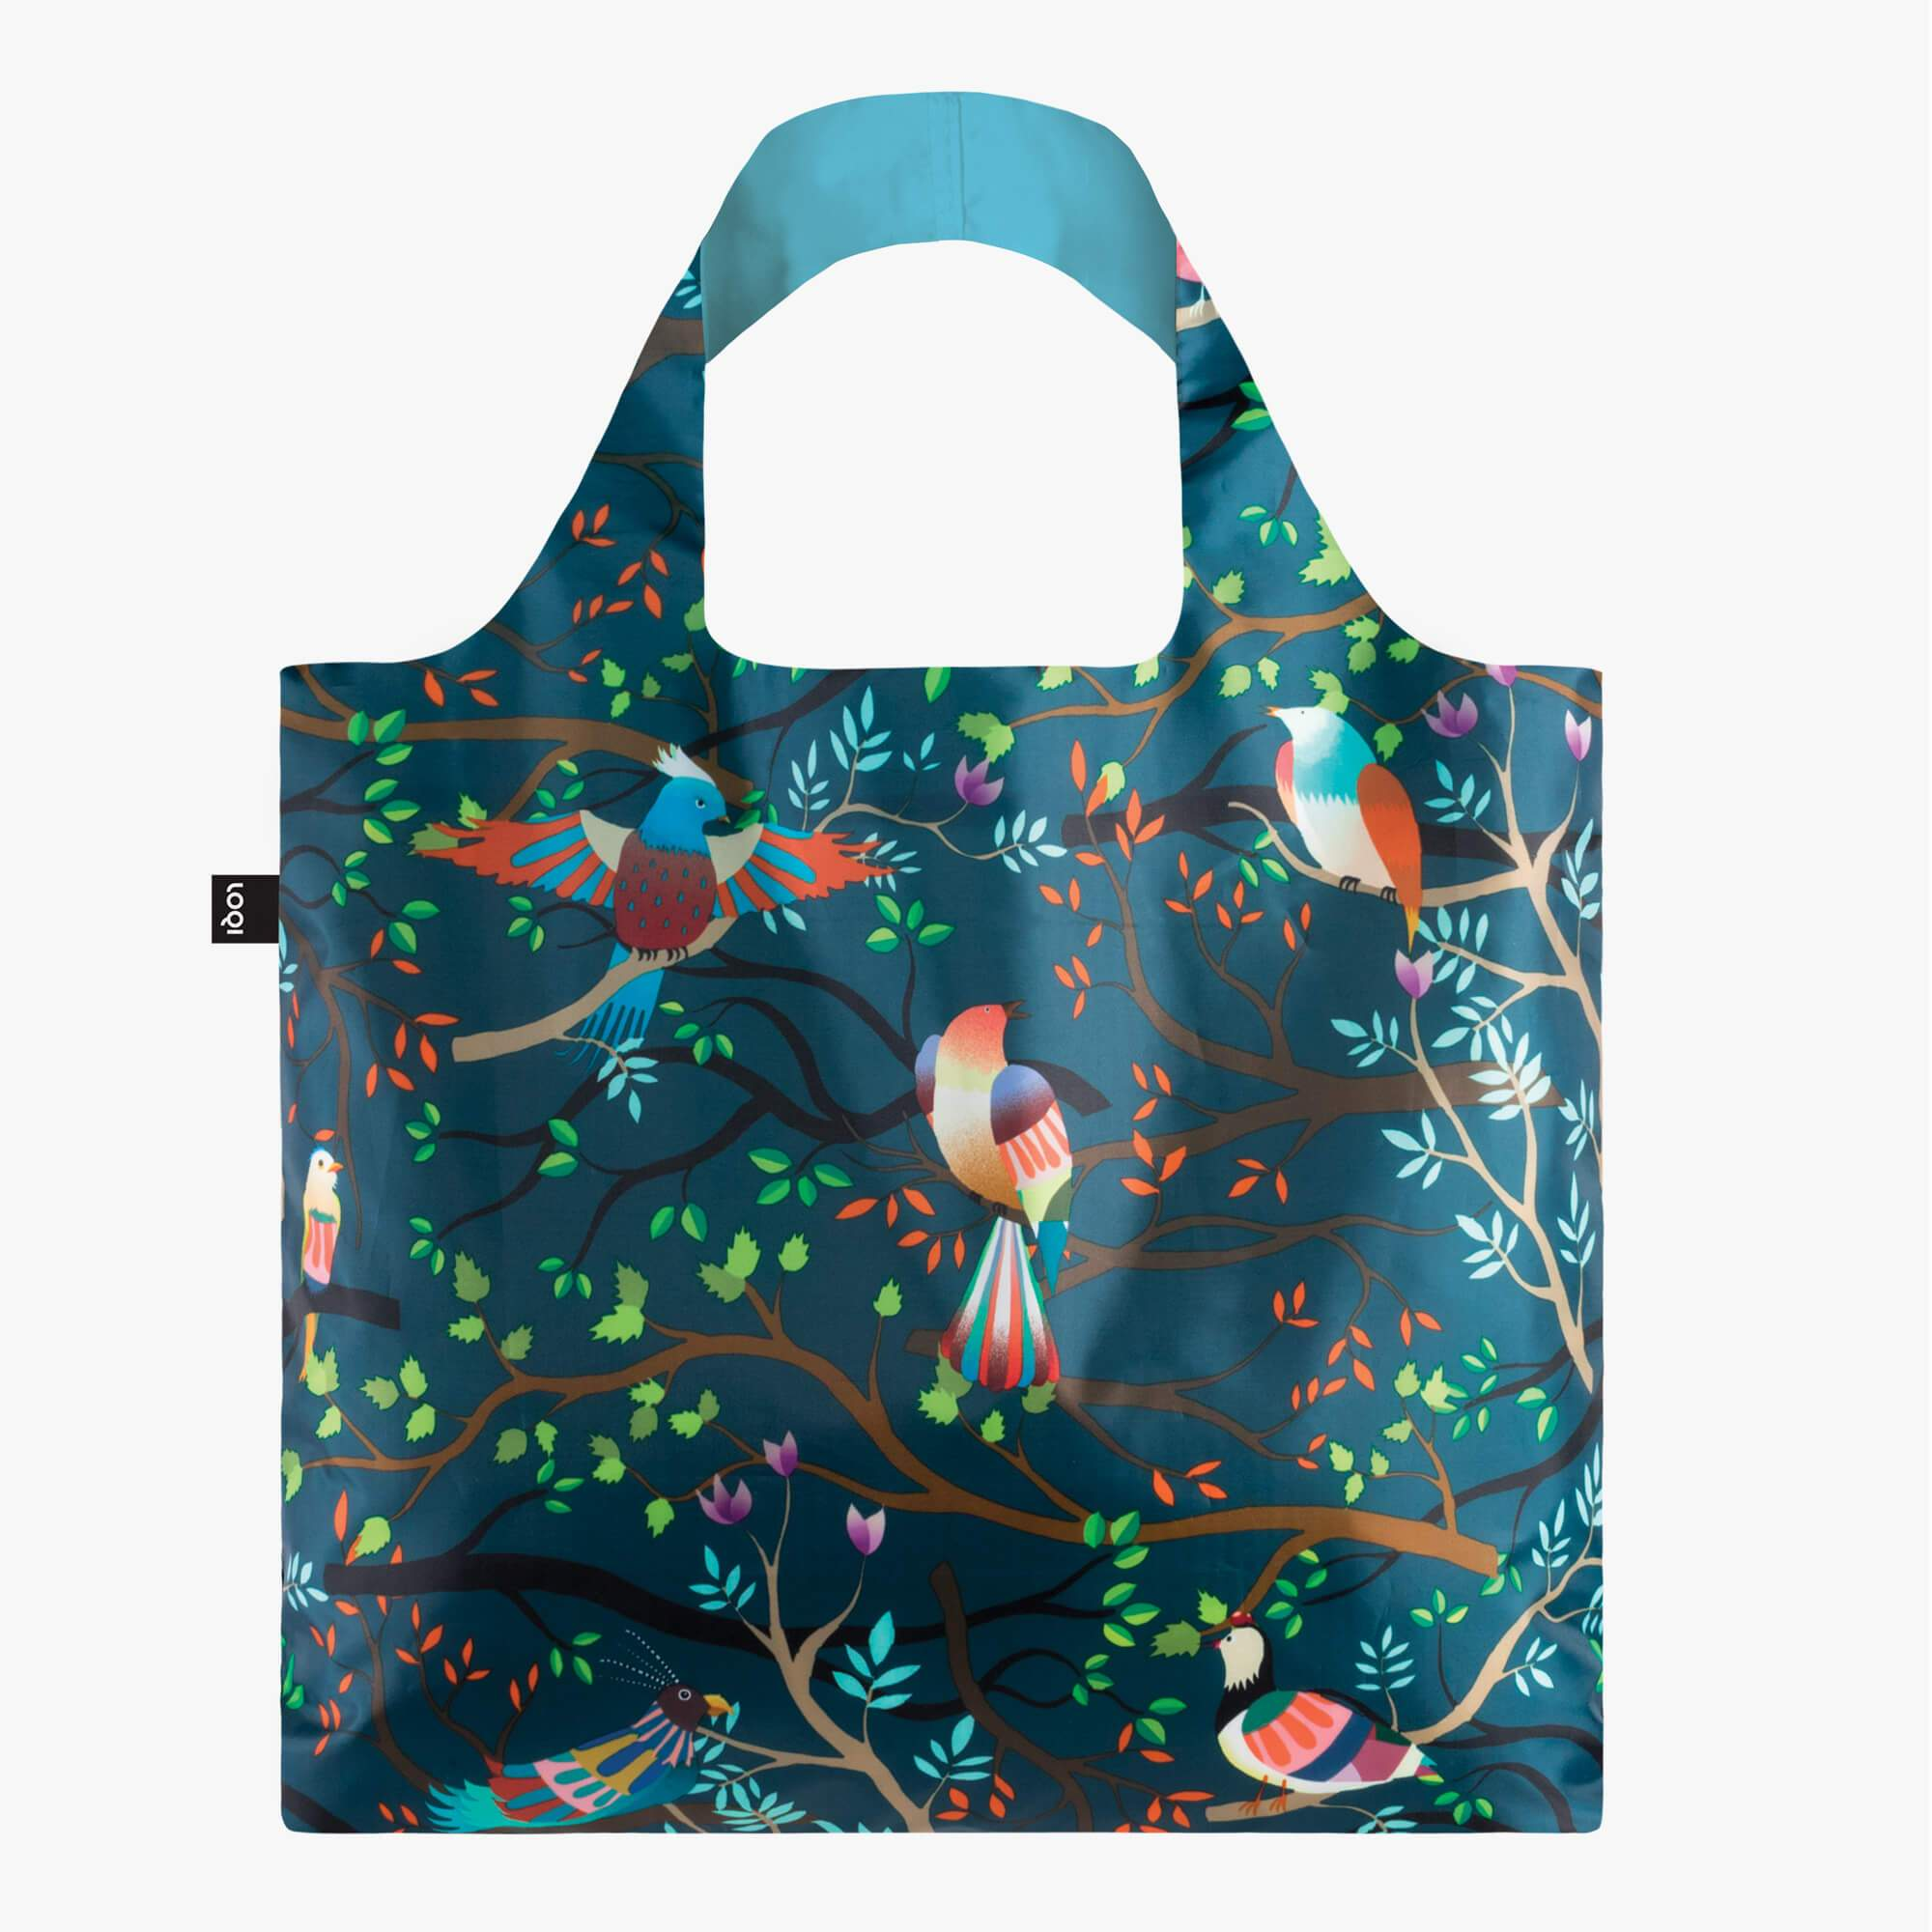 LOQI Hvass & Hannibal Birds Bag